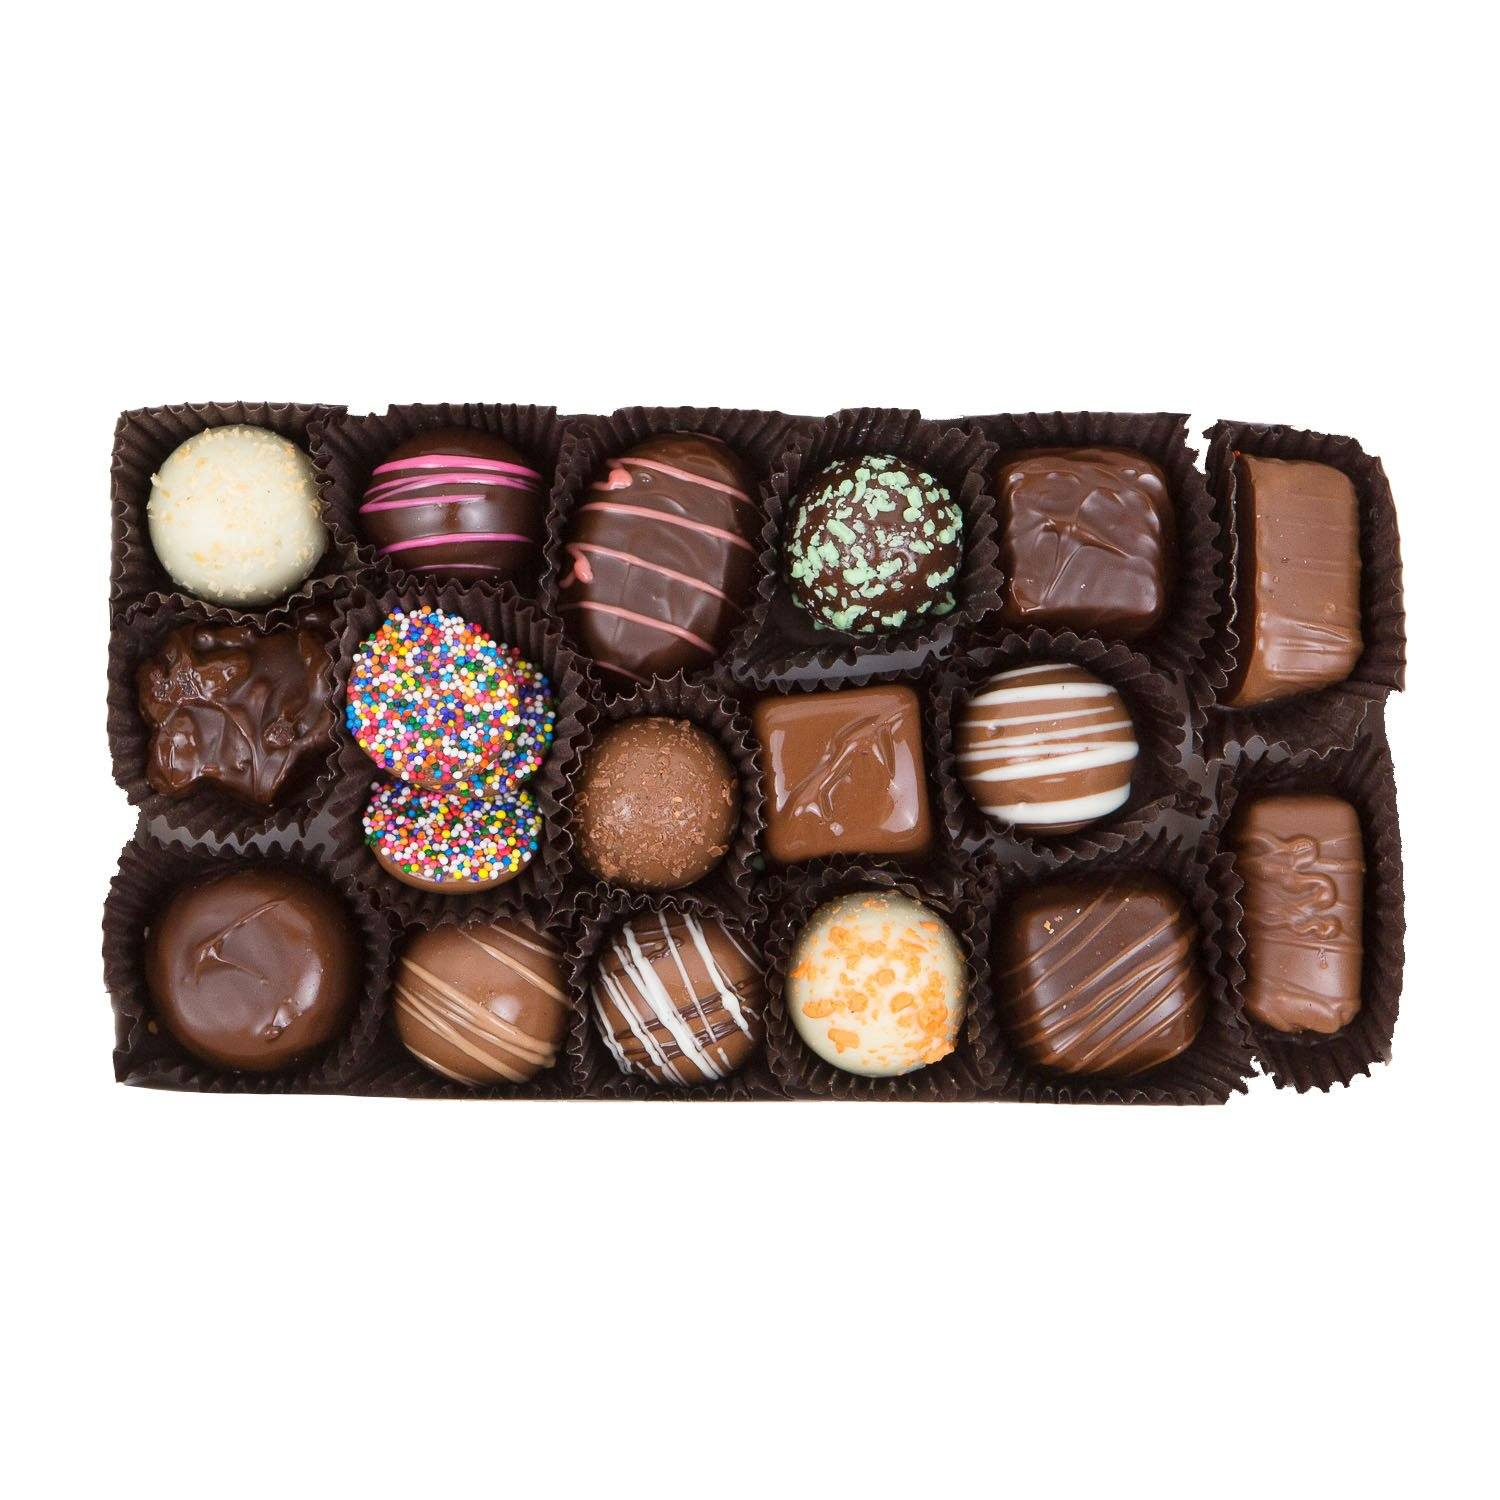 Gifts for Brother in Law - Assorted Chocolate Gift Box - Jackie's Chocolate (1487129935907)